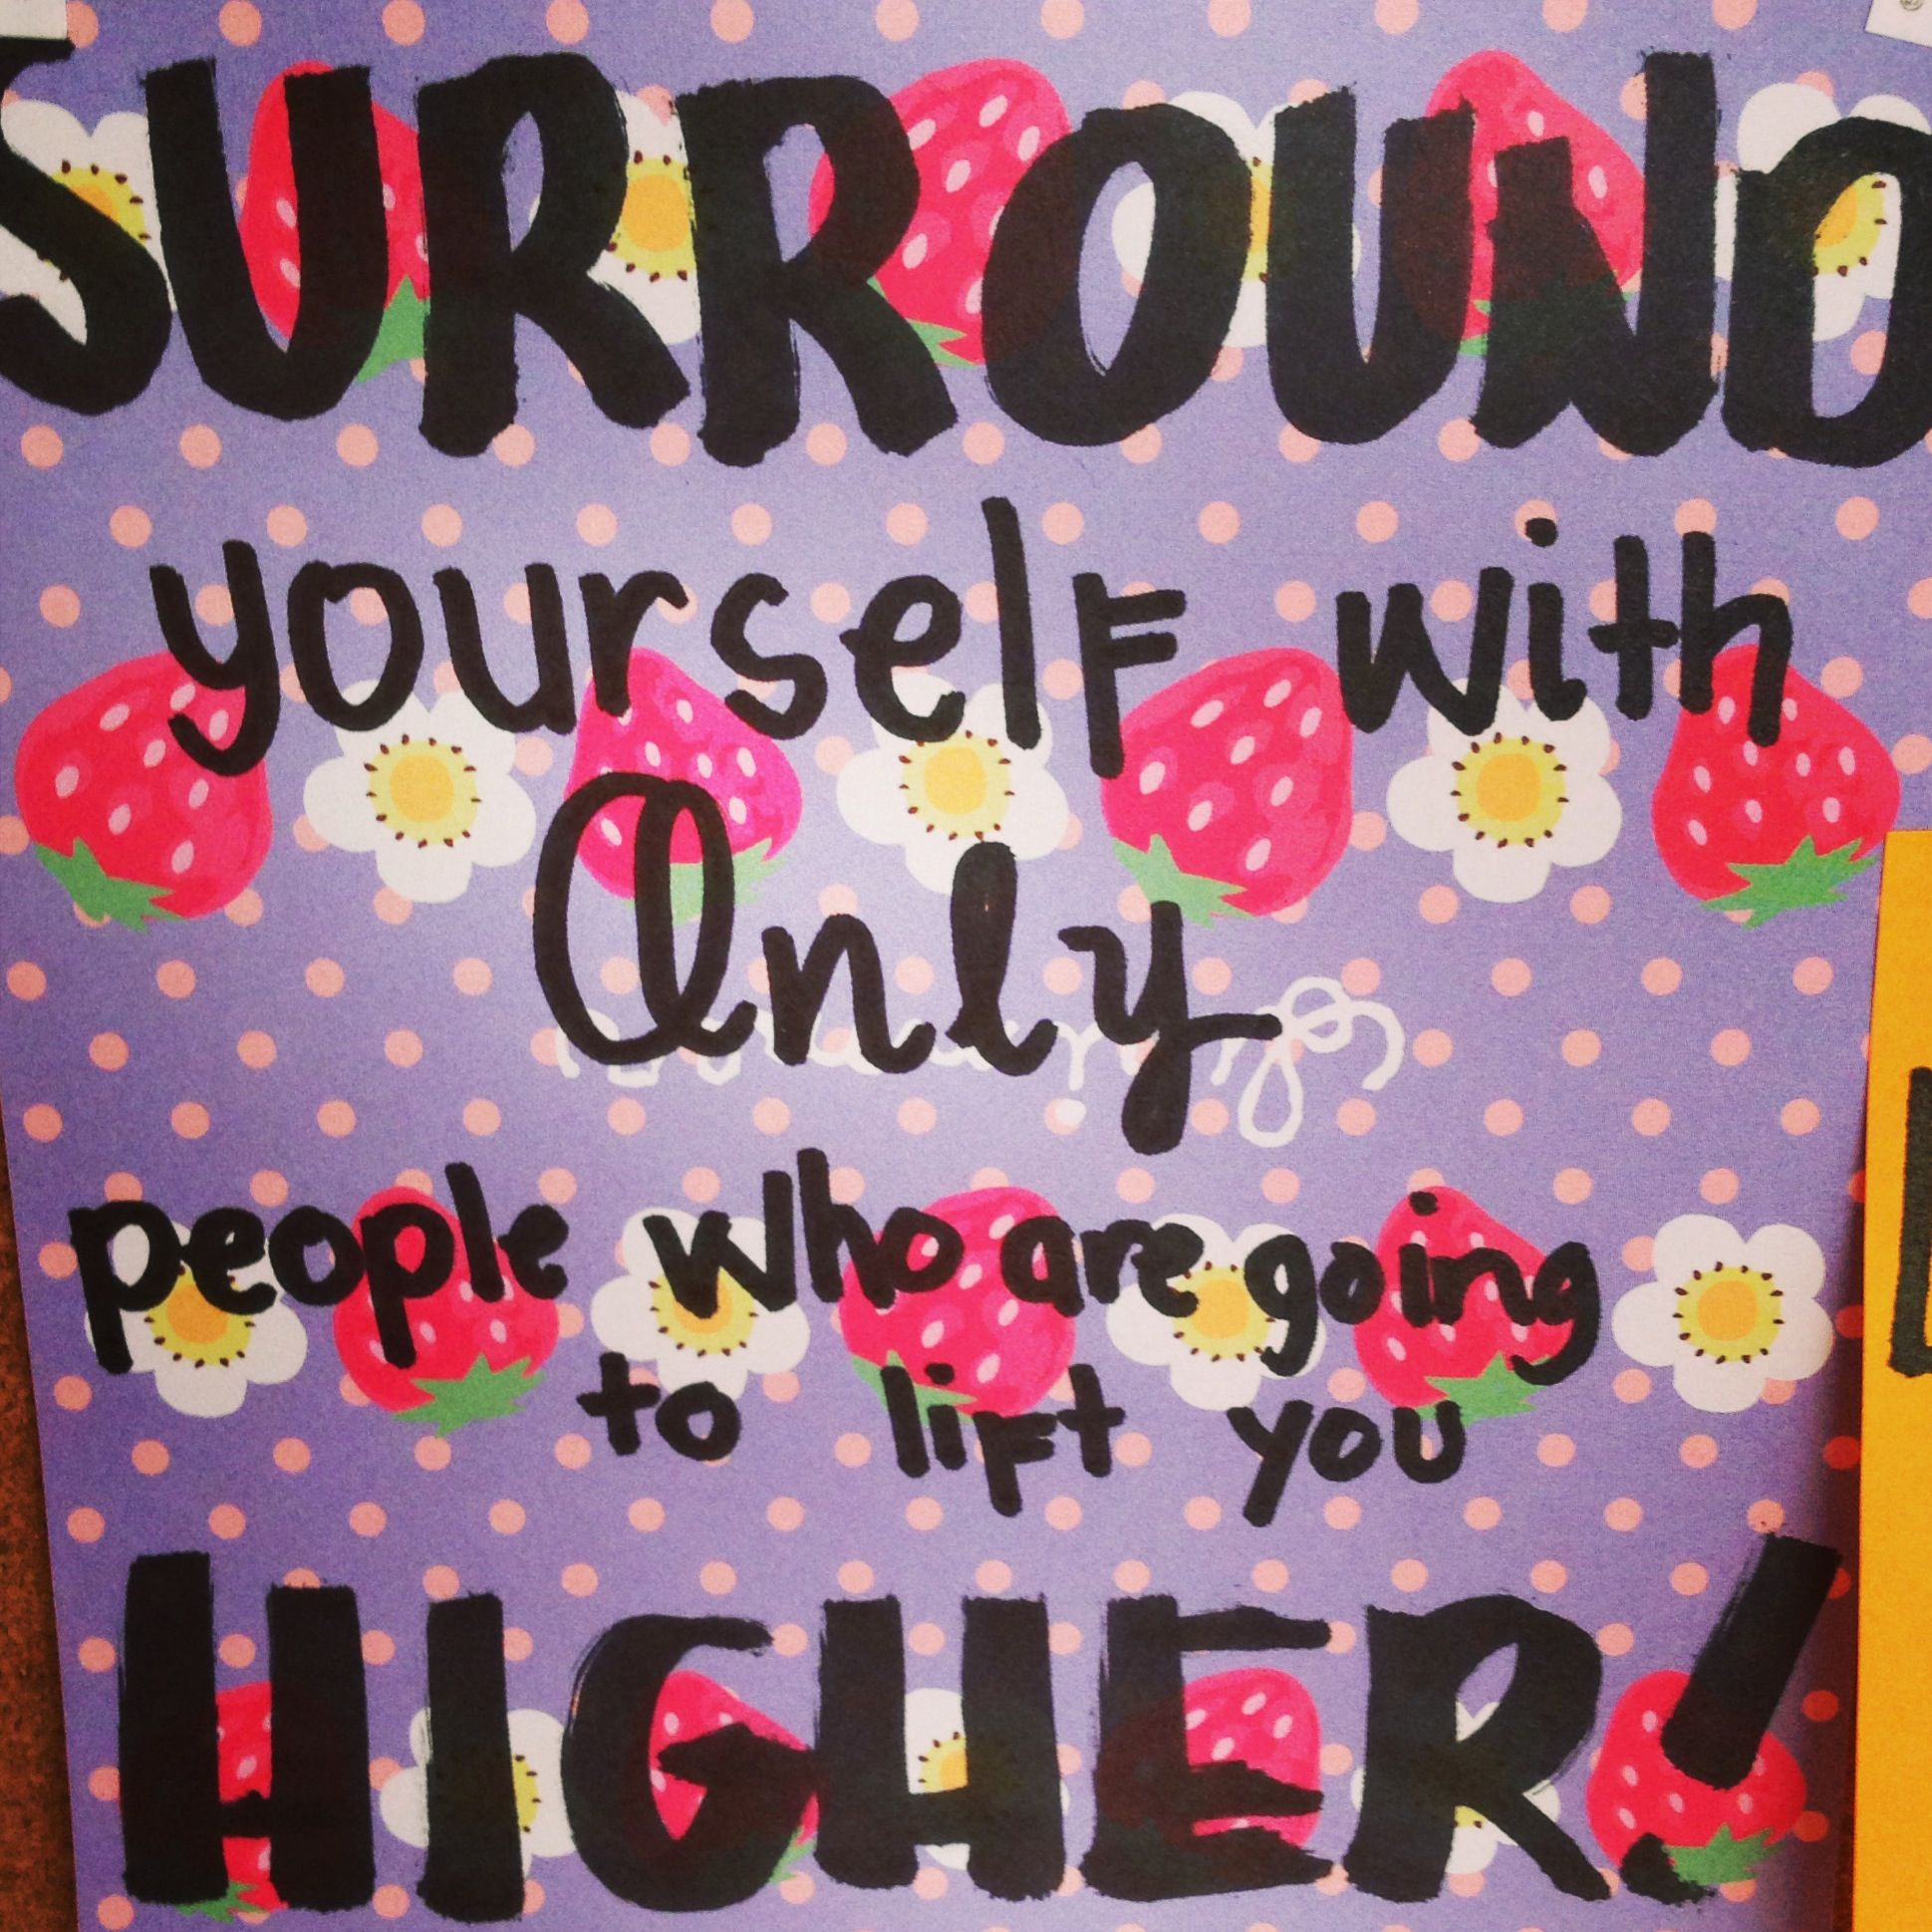 Surround yourself only with people who are going to lift you higher!